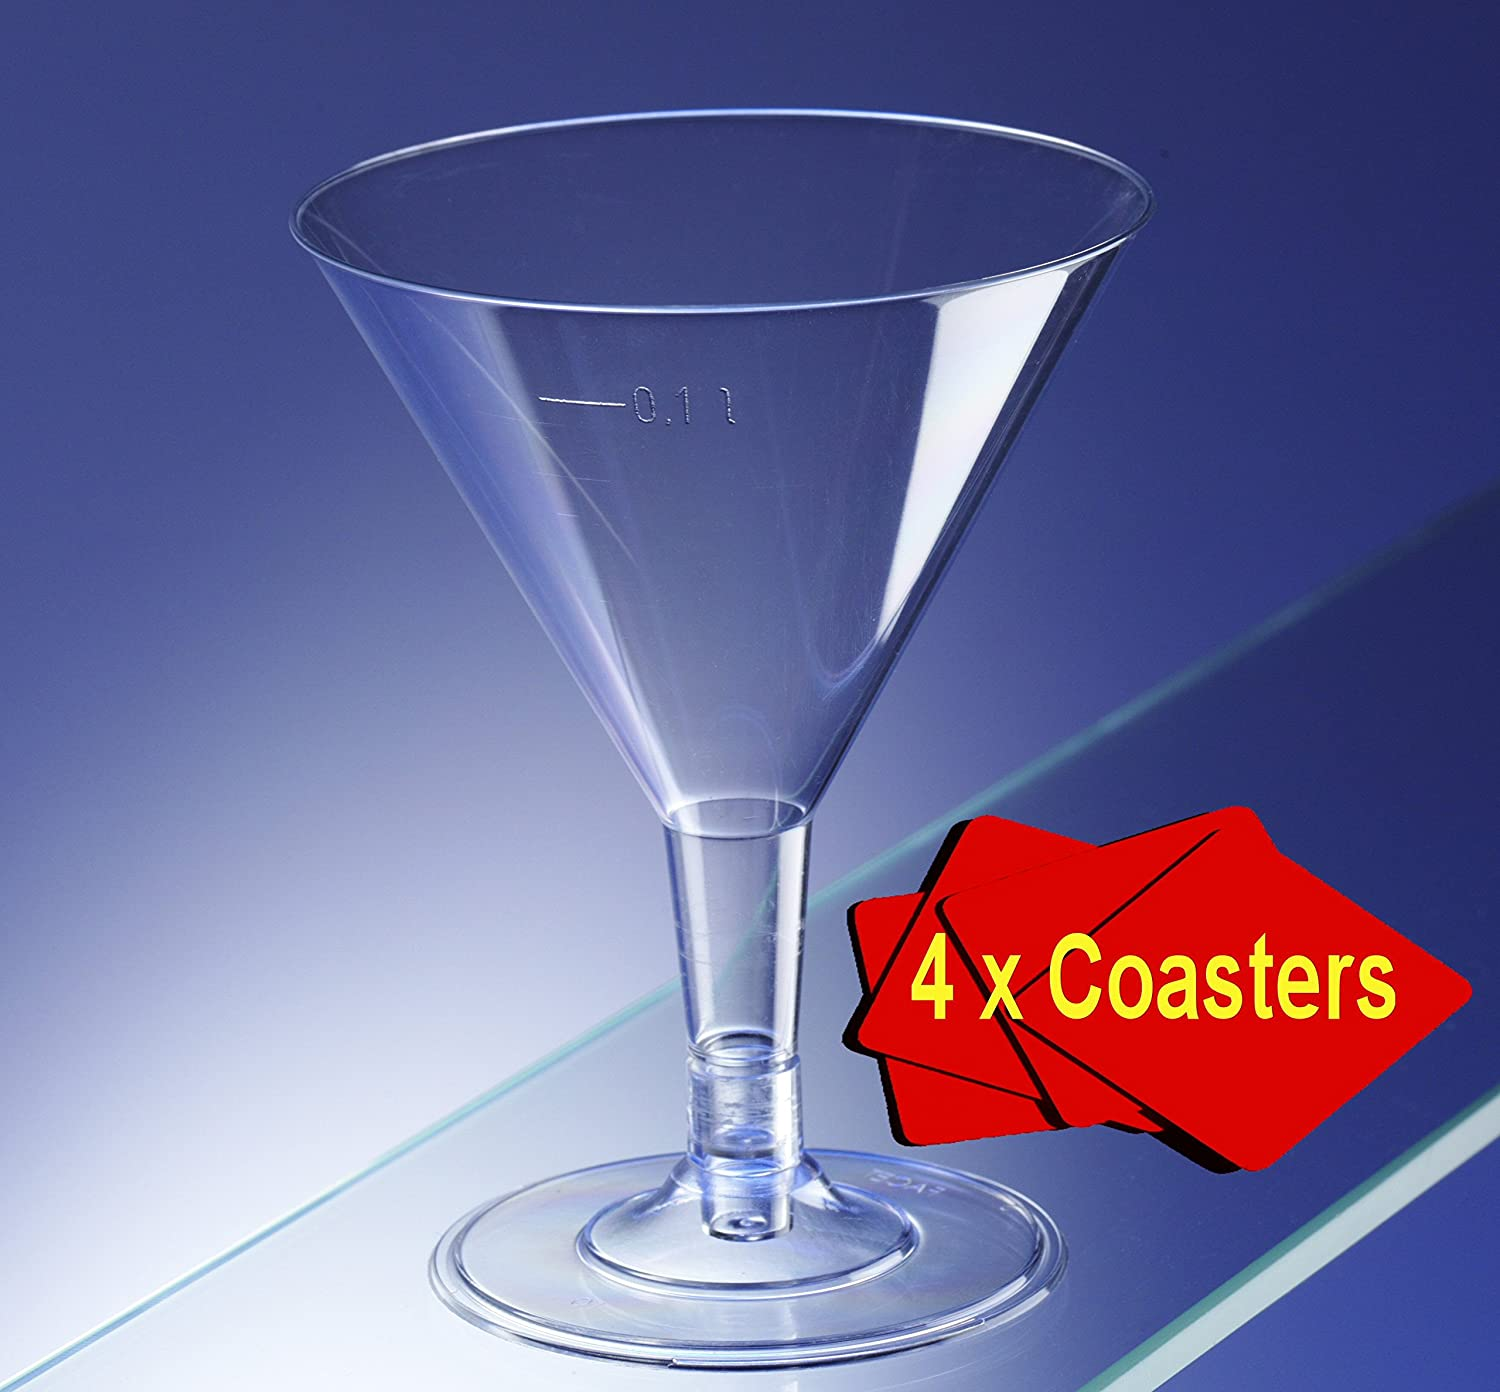 60 x Clear Plastic Disposable Martini/Cocktail Glasses 160ml.Ideal for picnics, camping and glamping, festivals, outdoor pool, bbq, garden and special occasions. Offer Pack of 60 glasses with 4 x AIOS drinks mats in box.